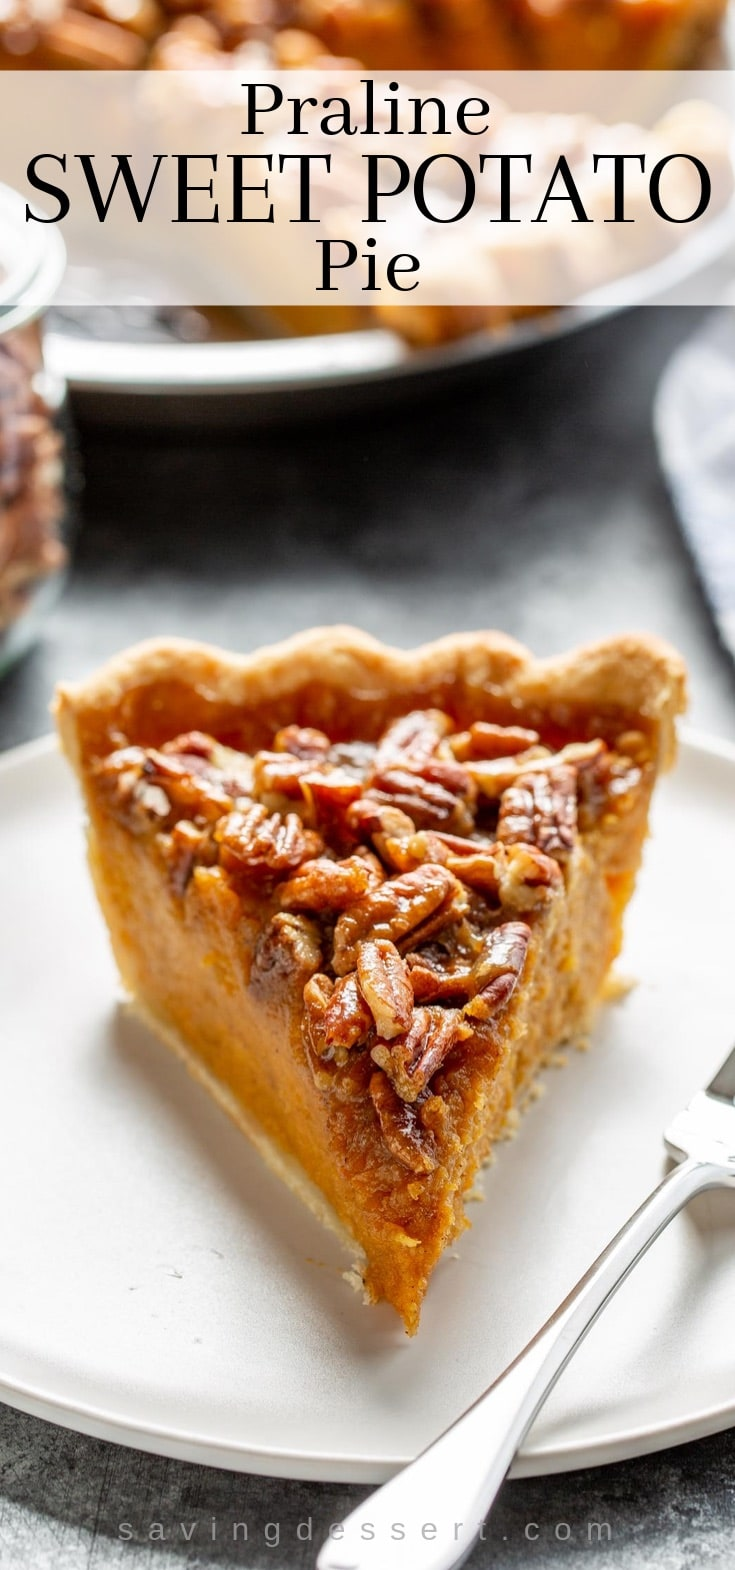 A slice of praline sweet potato pie on a plate covered with pecans